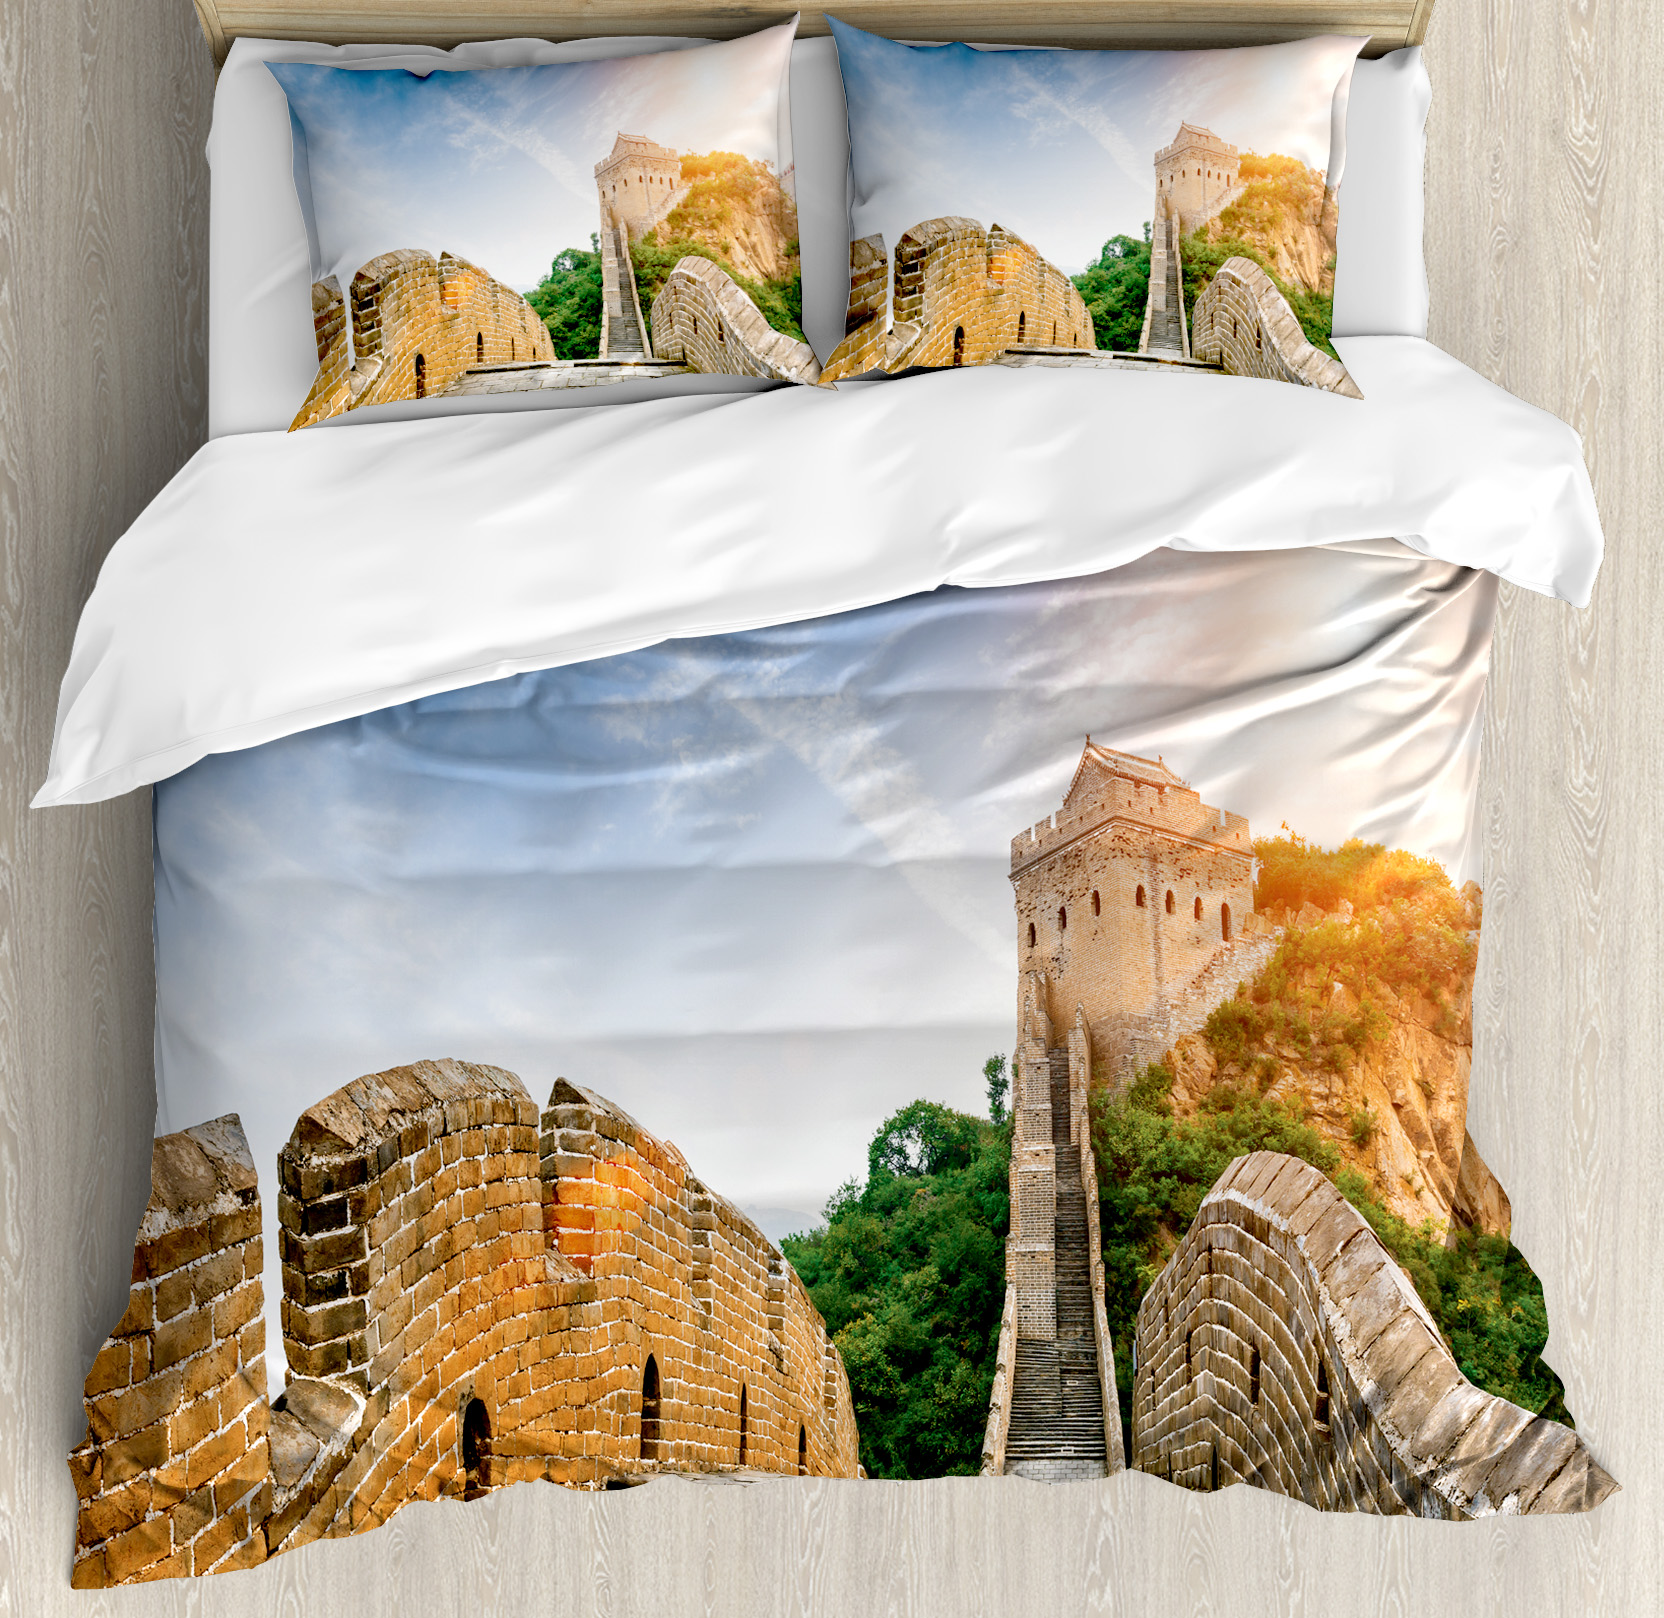 Great Wall of China King Size Duvet Cover Set, Legendary Dynasty Monument on Cliffs Historical Countryside Art Design, Decorative 3 Piece Bedding Set with 2 Pillow Shams, Grey Blue, by Ambesonne